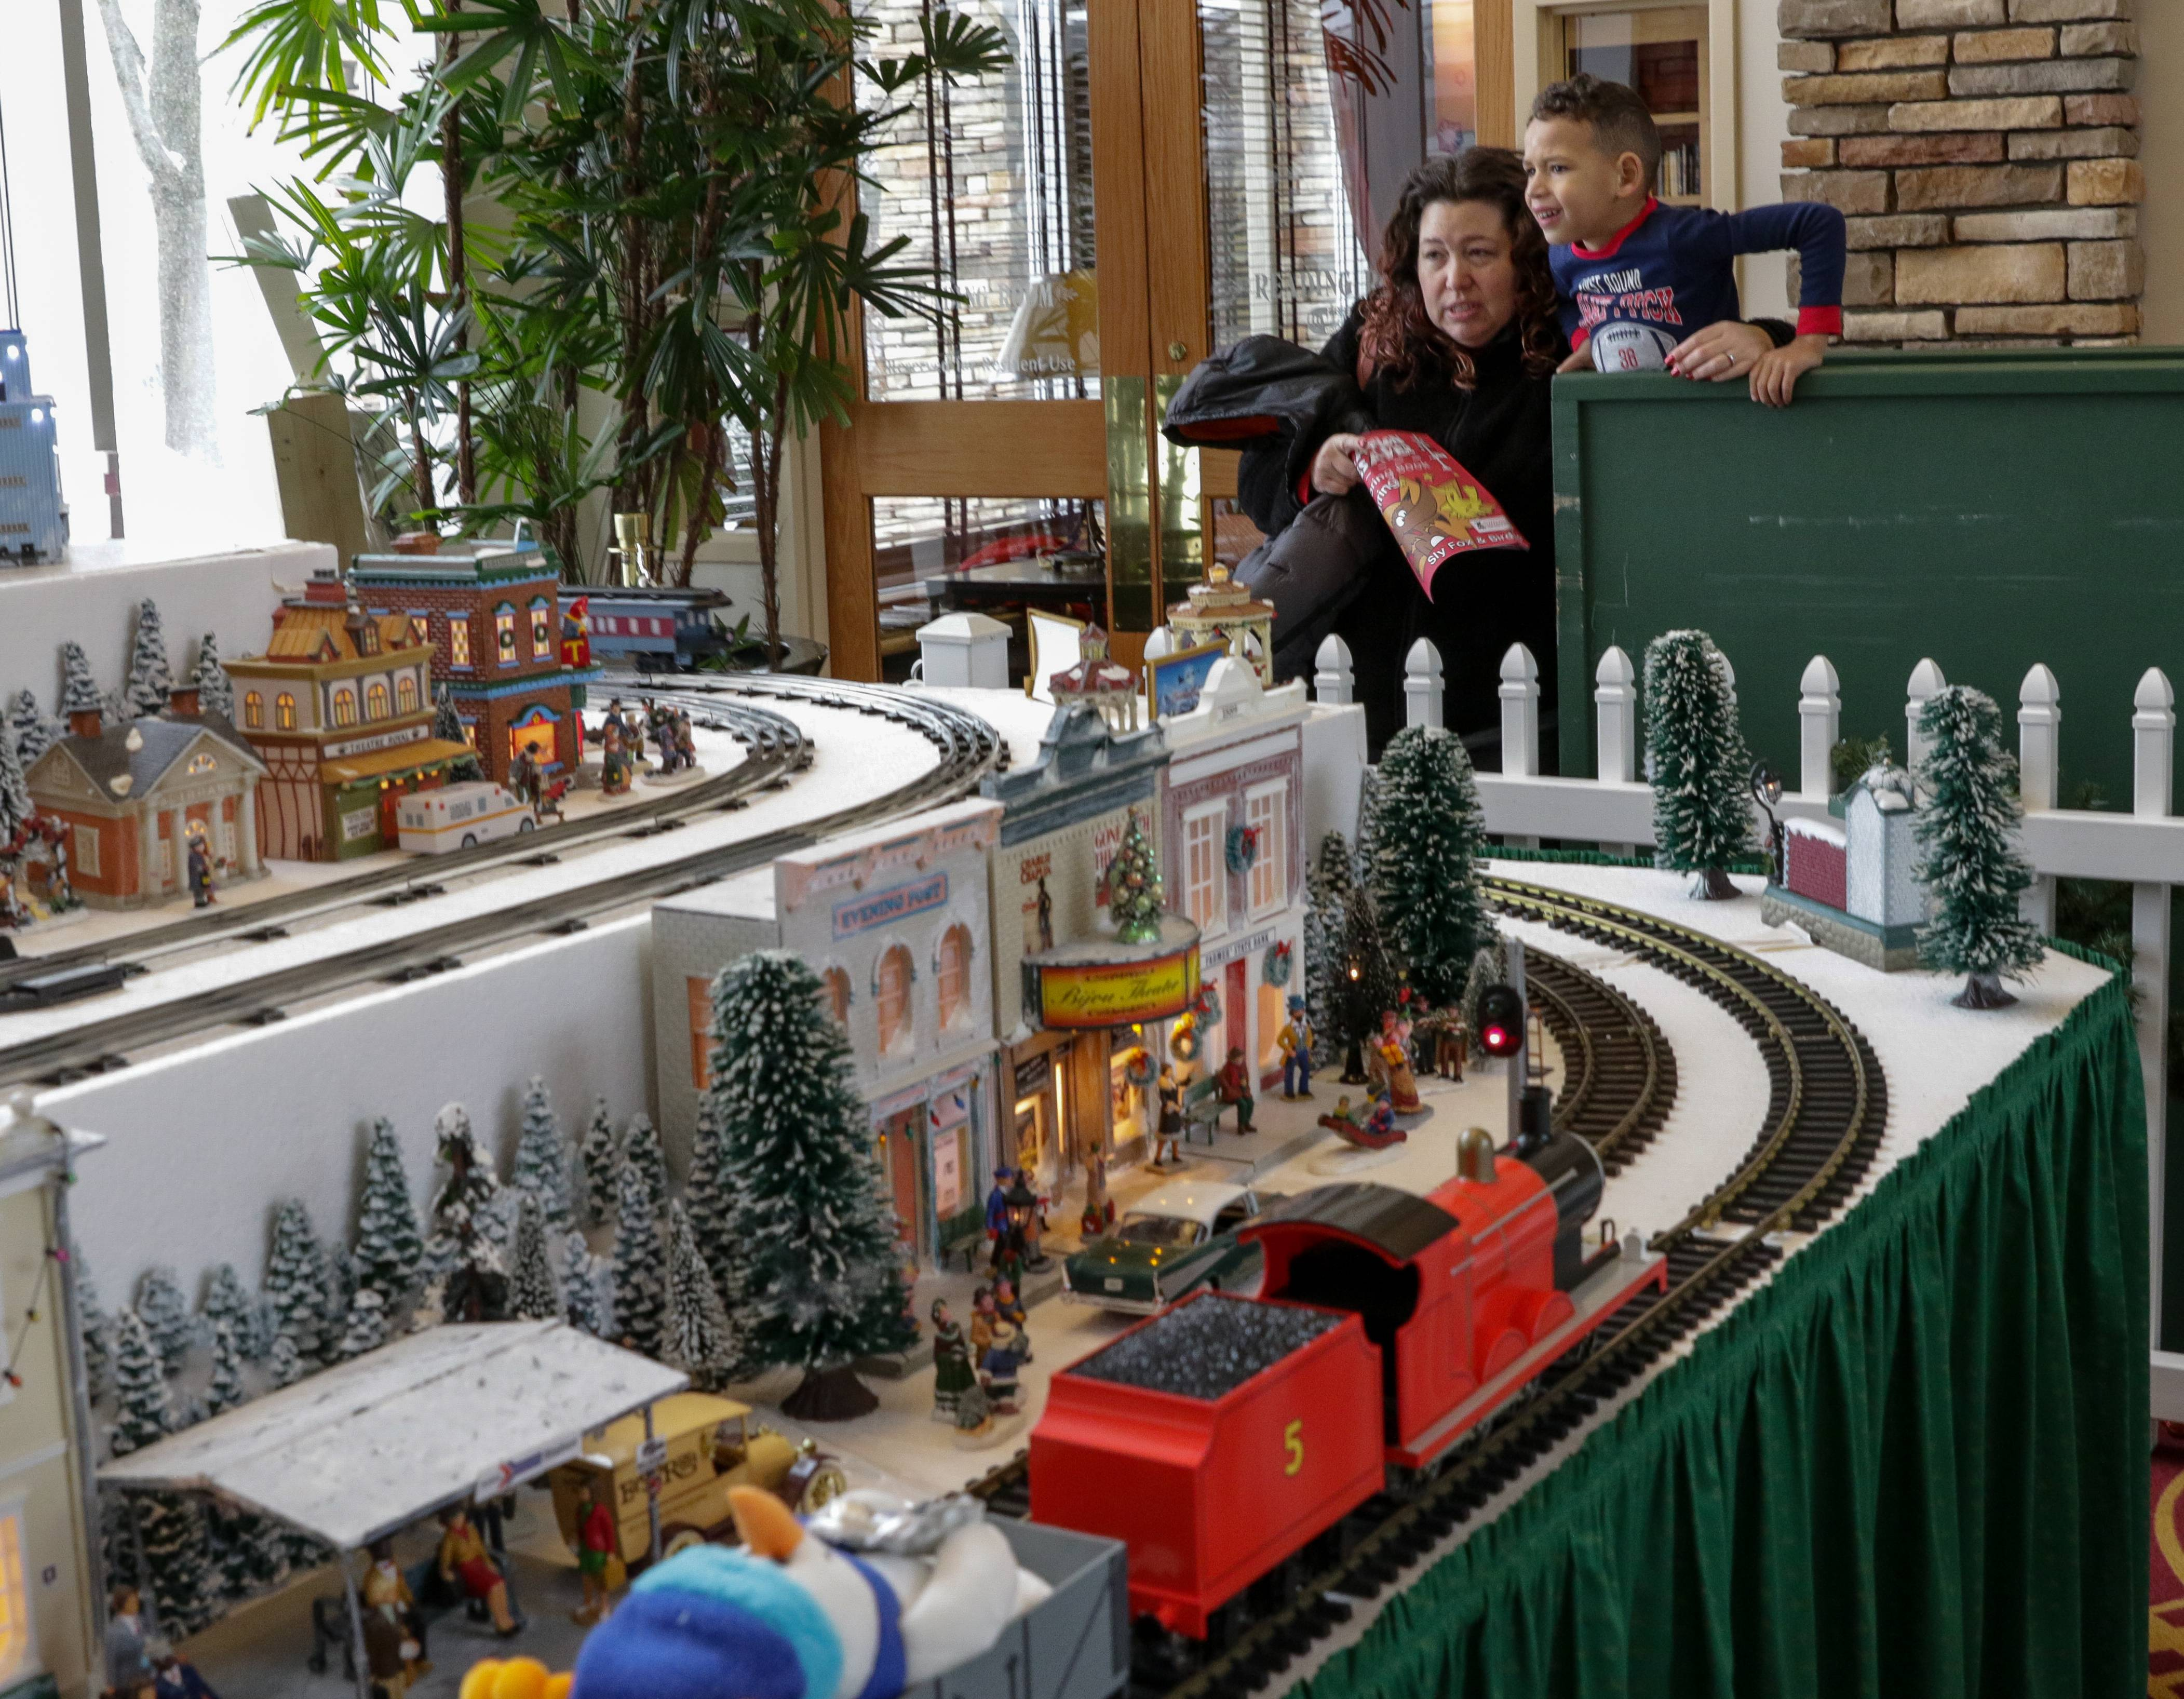 Sun City model train layout a magnet for kids, families